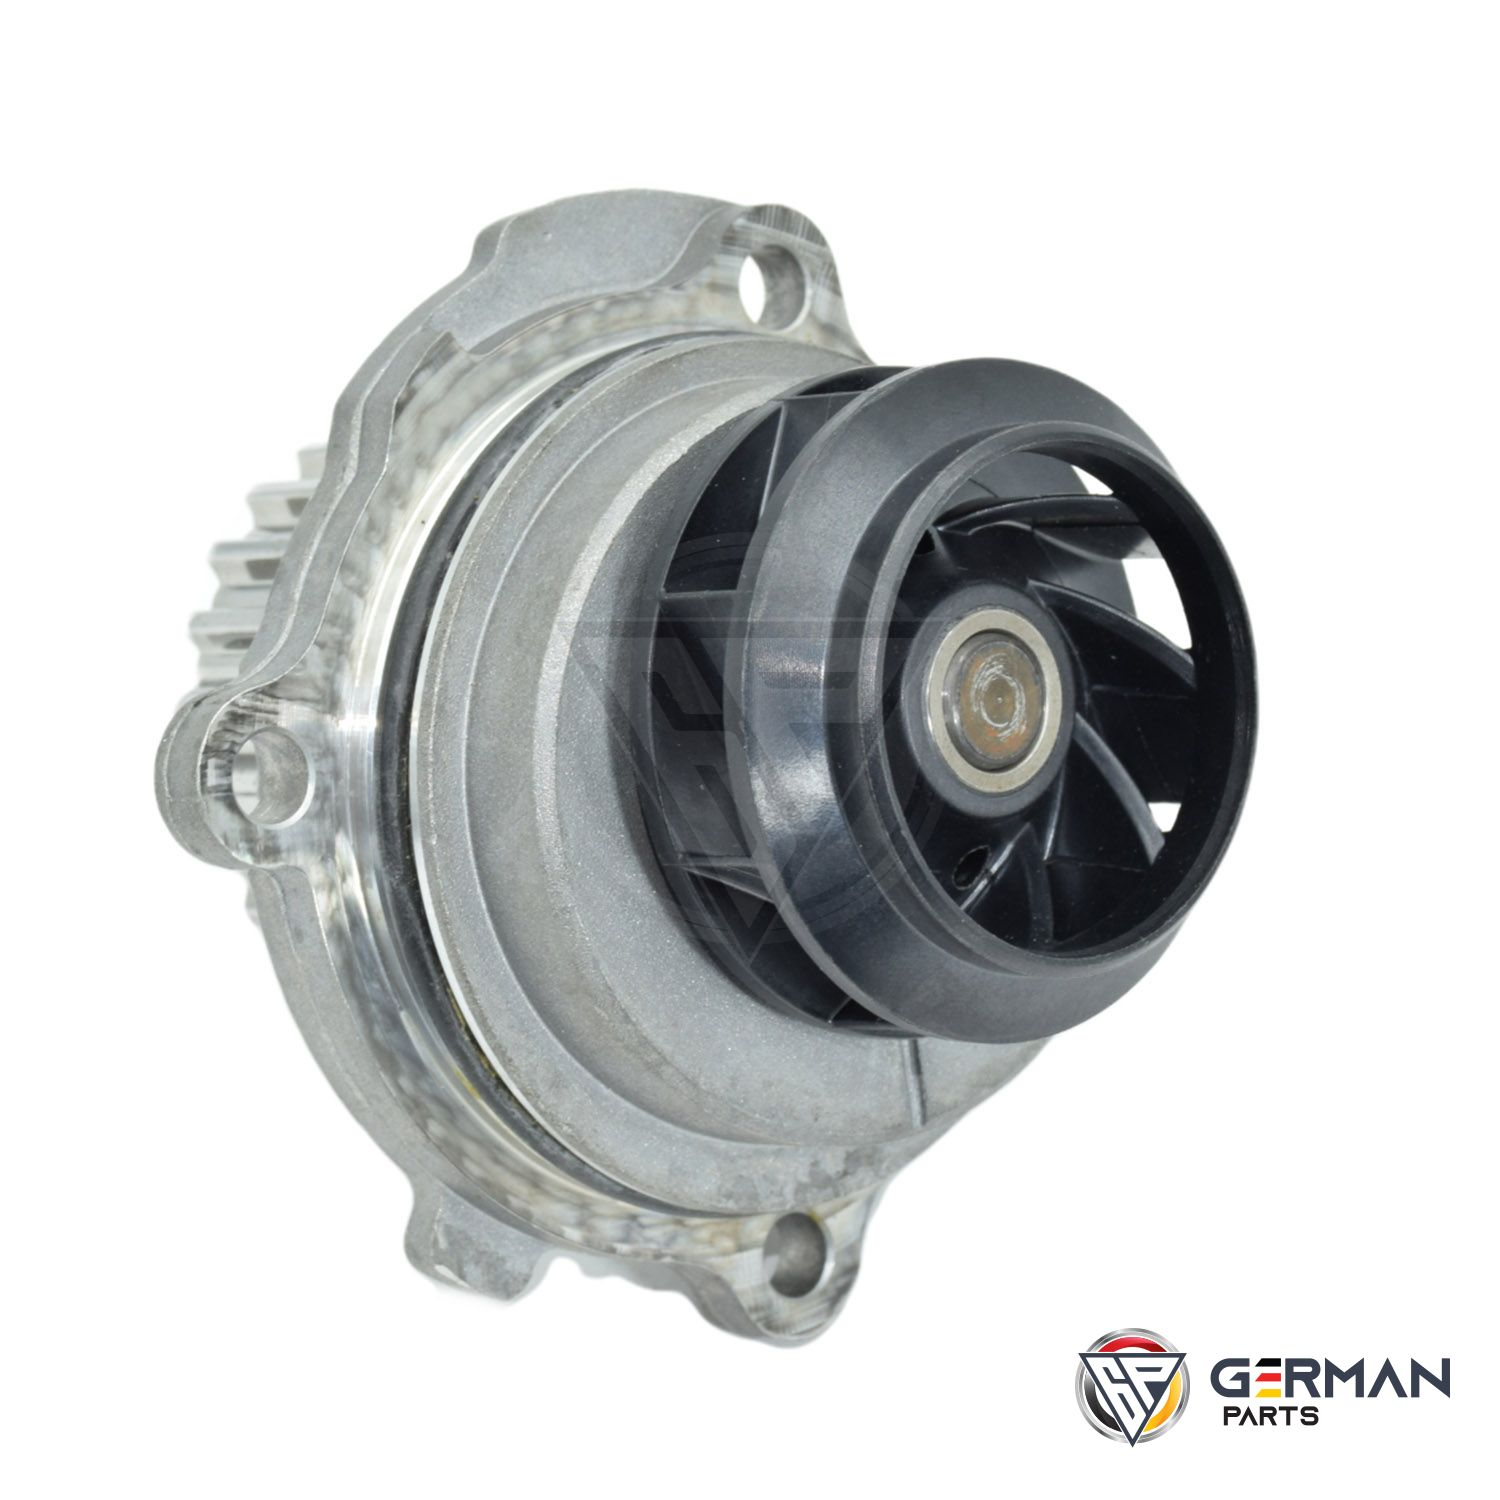 Buy Genuine Audi/Volkswagen Water Pump 06B121011M - German Parts